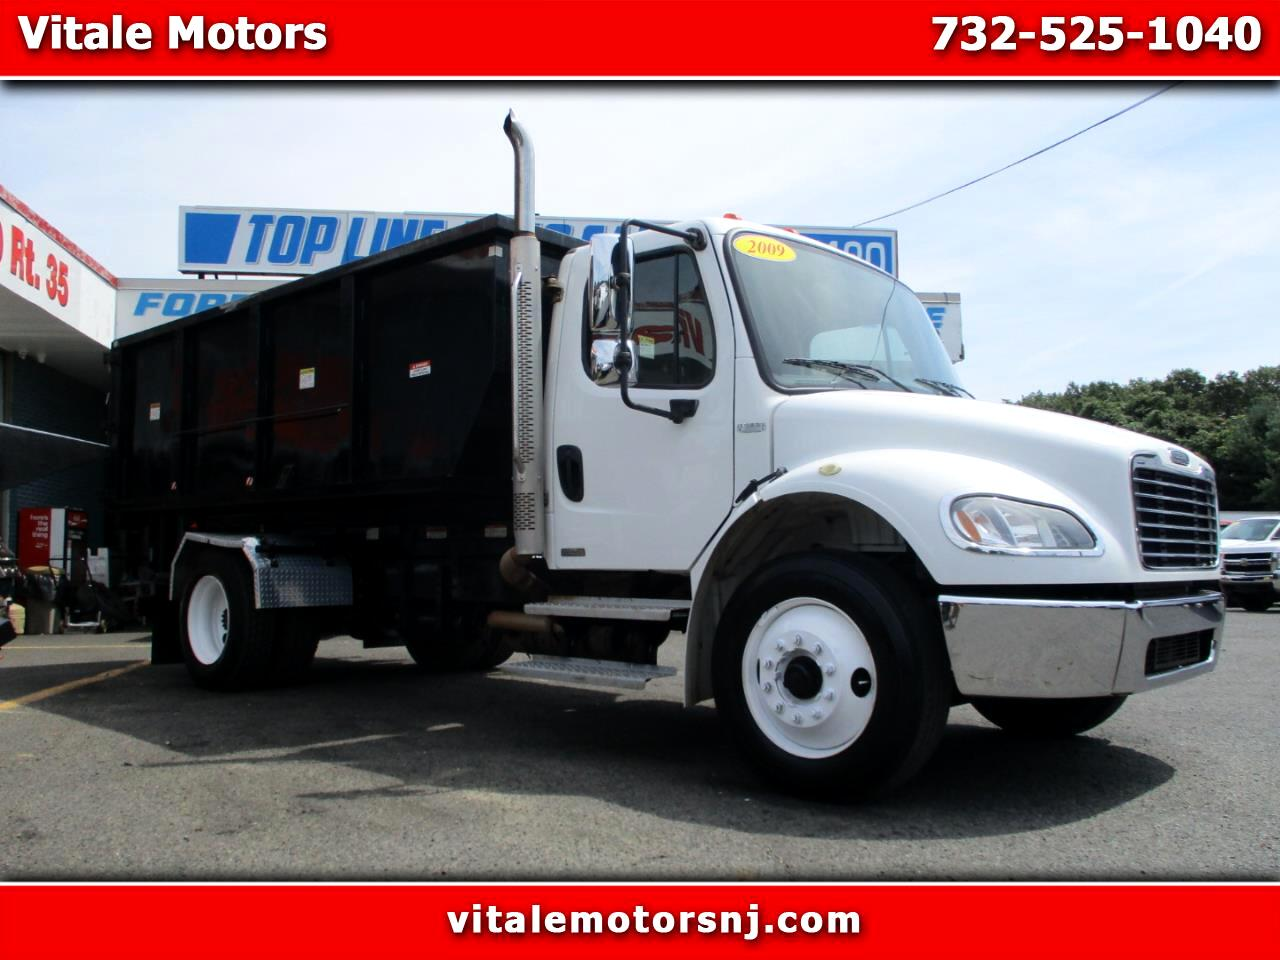 2009 Freightliner M2 Medium Duty SWITCH N GO TRUCK